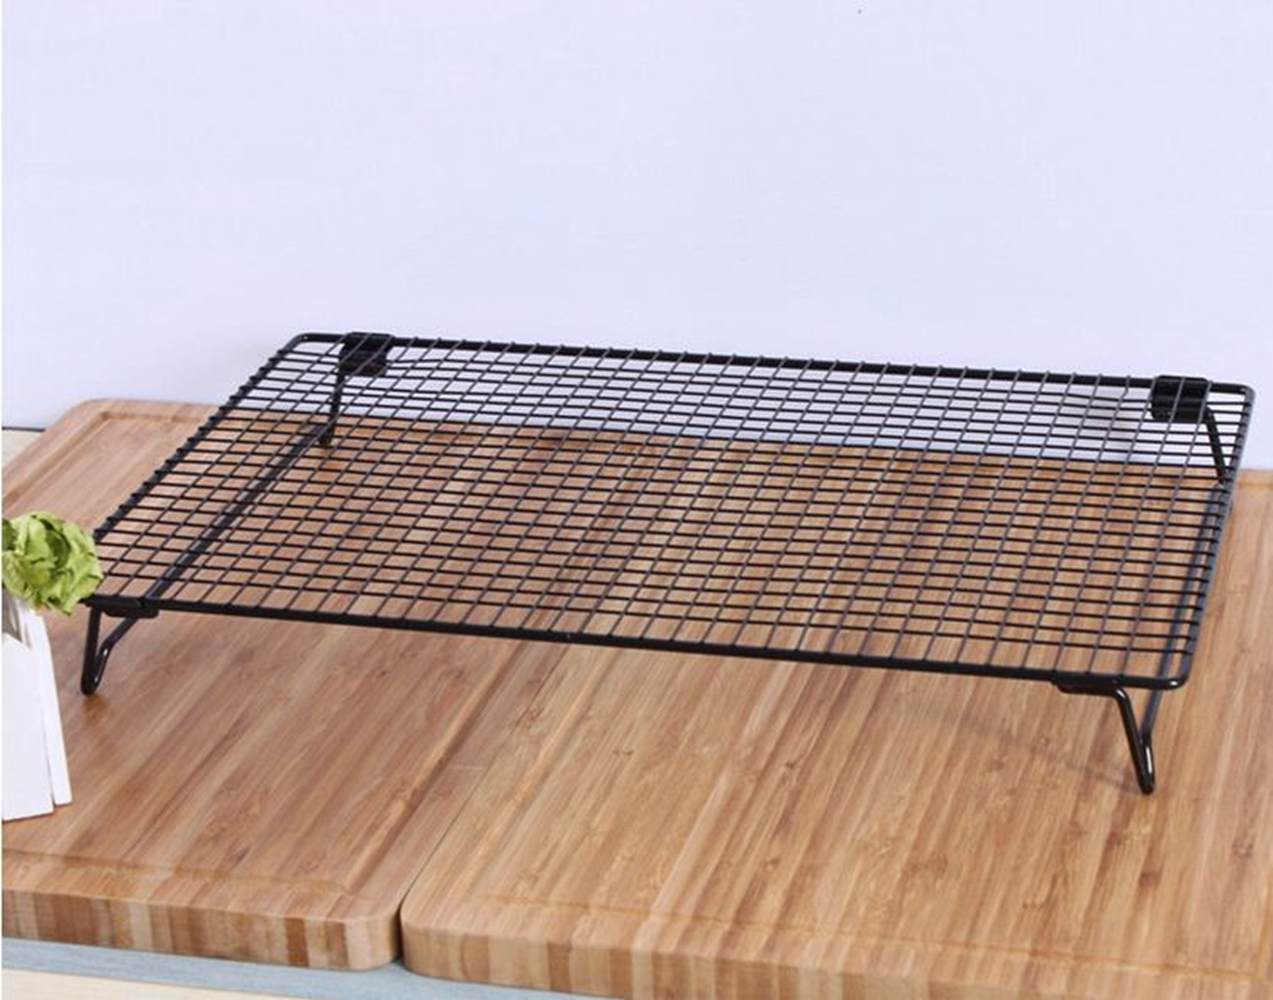 stainless steel cooling baking wire rack roasting cool cookies cakes oven uk new ebay. Black Bedroom Furniture Sets. Home Design Ideas